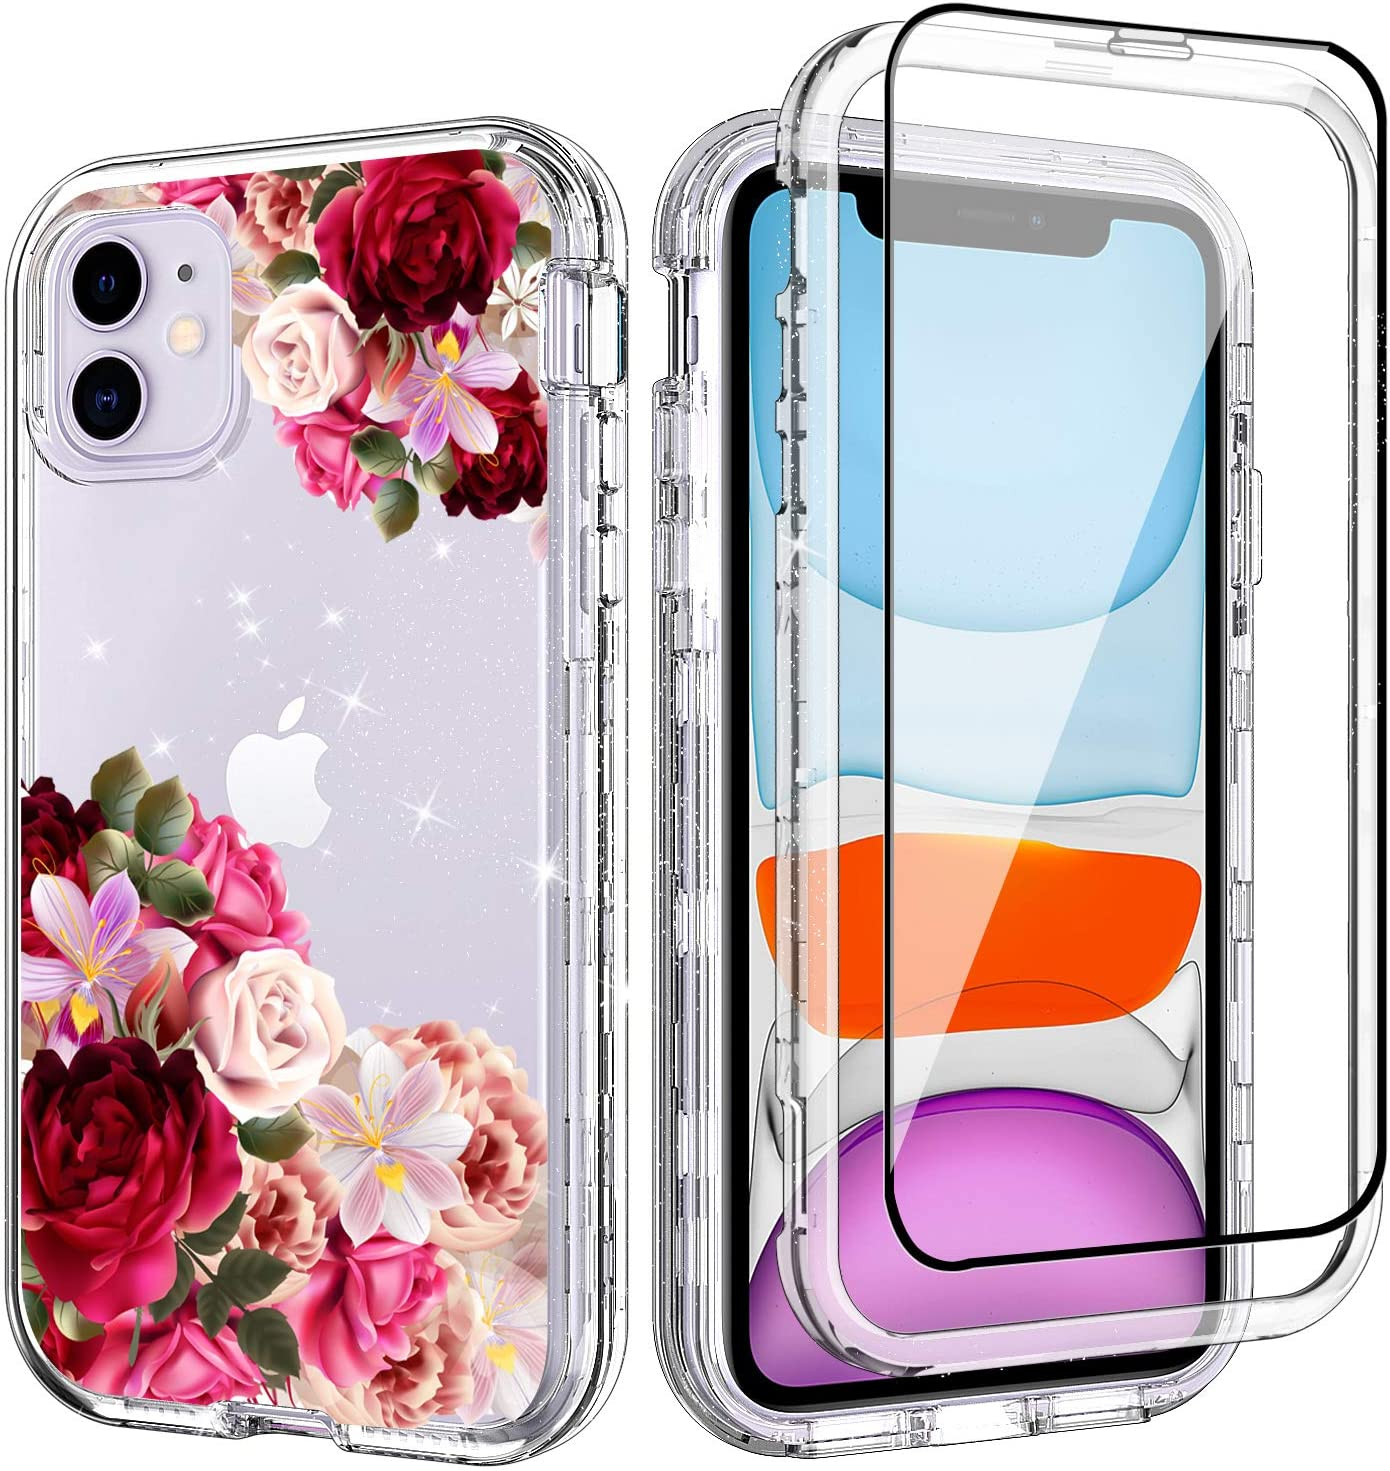 ACKETBOX iPhone 11 Case with Screen Protector 3in1 Hybrid Impact Defender Shockproof Armor Resistant Floral PC Back Case and Bumper+TPU Full Body Cover for iPhone 11 6.1 Inch(Flowers)